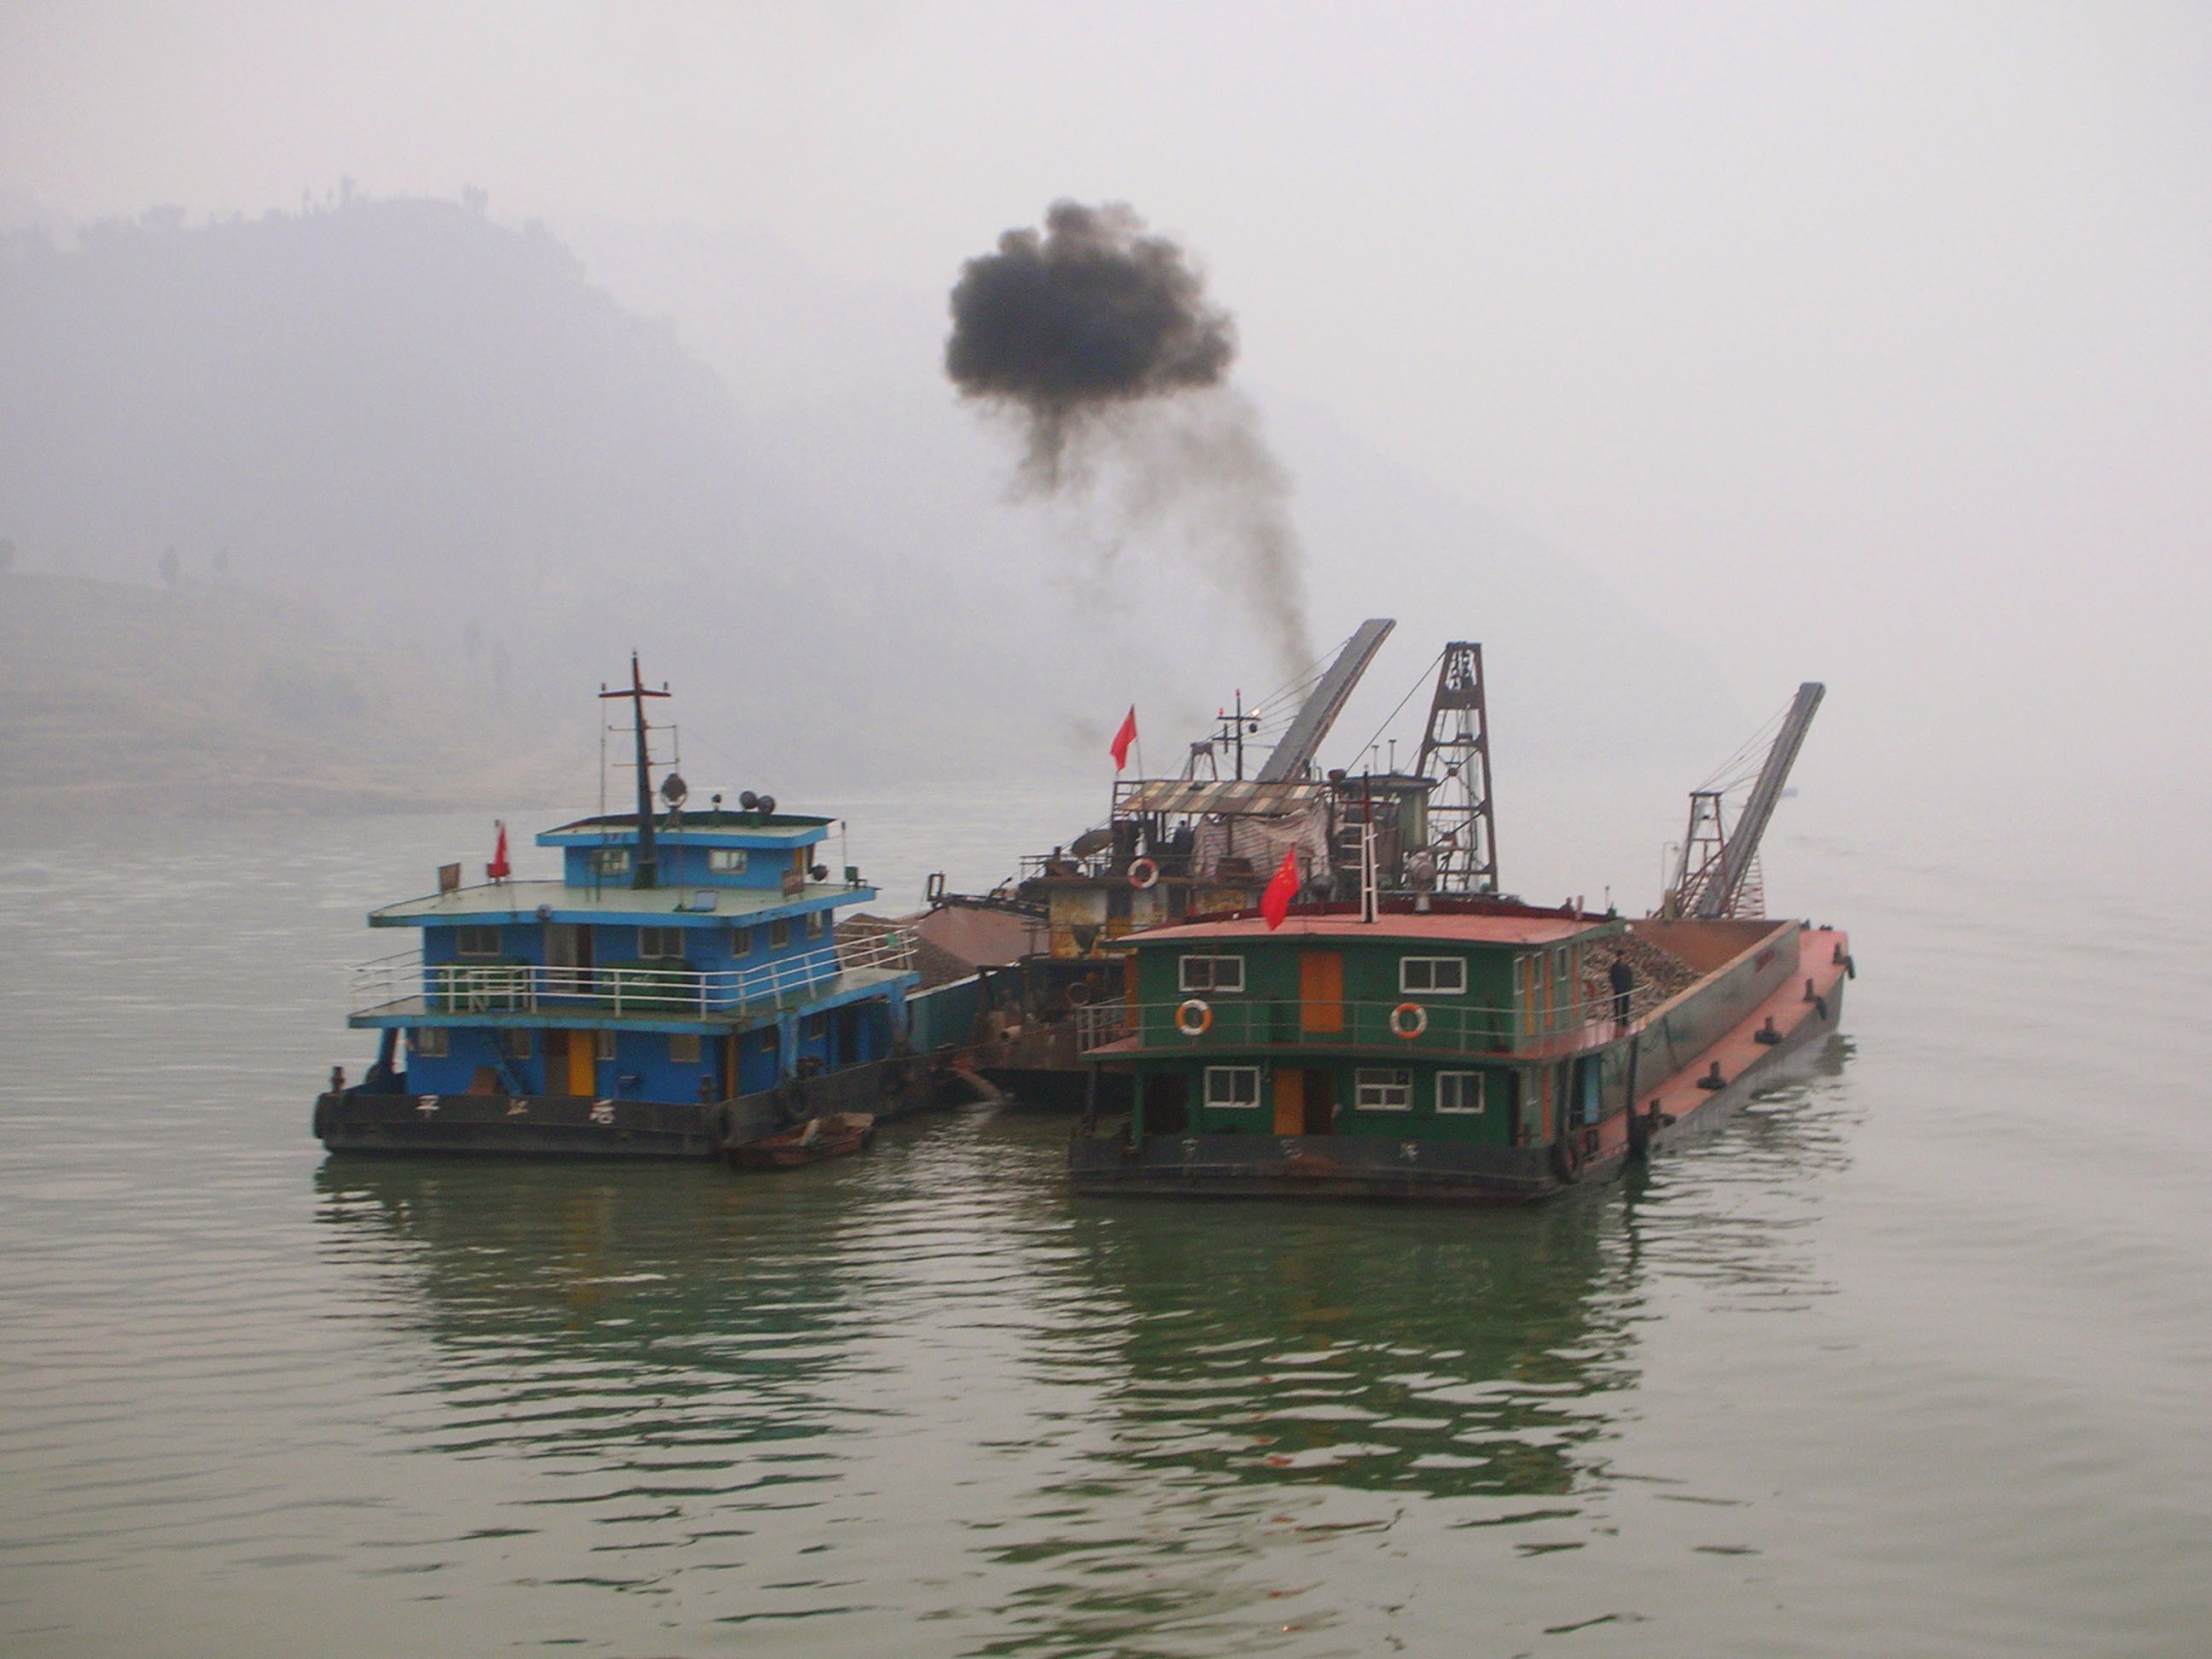 A couple of industrial looking boats float down the Yangzi.